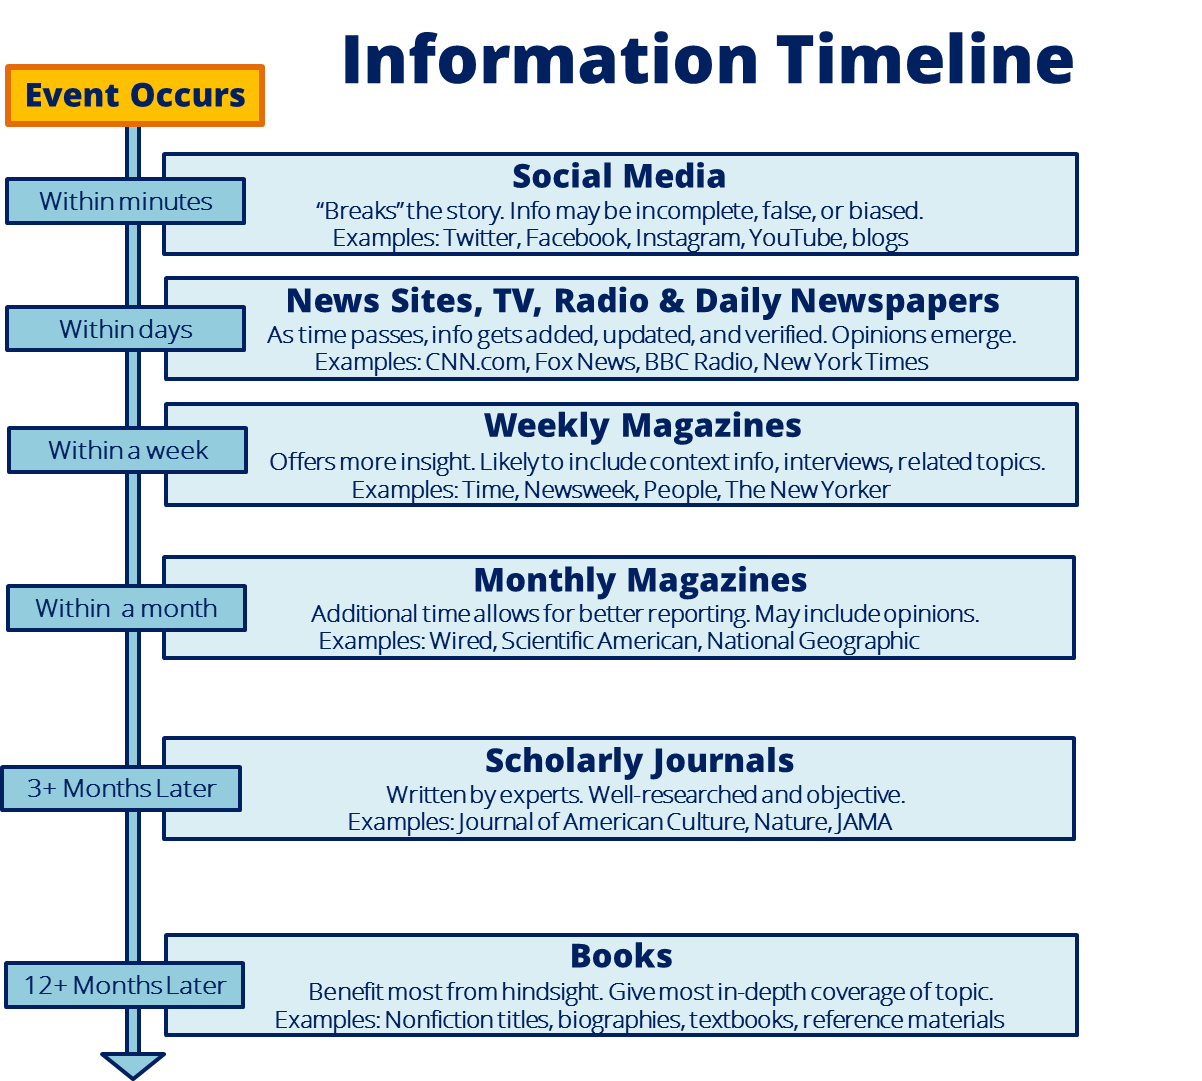 When an event occurs, details post to social media within minutes. Within the first few days of the event, news and media pick up the story and provide more and more details. At the end of the week, weekly magazines will piece together more information. At the end of the month, monthly magazines will provide even more details and context. It will take three months or more for the event to be discussed in scholarly literature. It will be a year or more for the first books published on the topic to emerge.